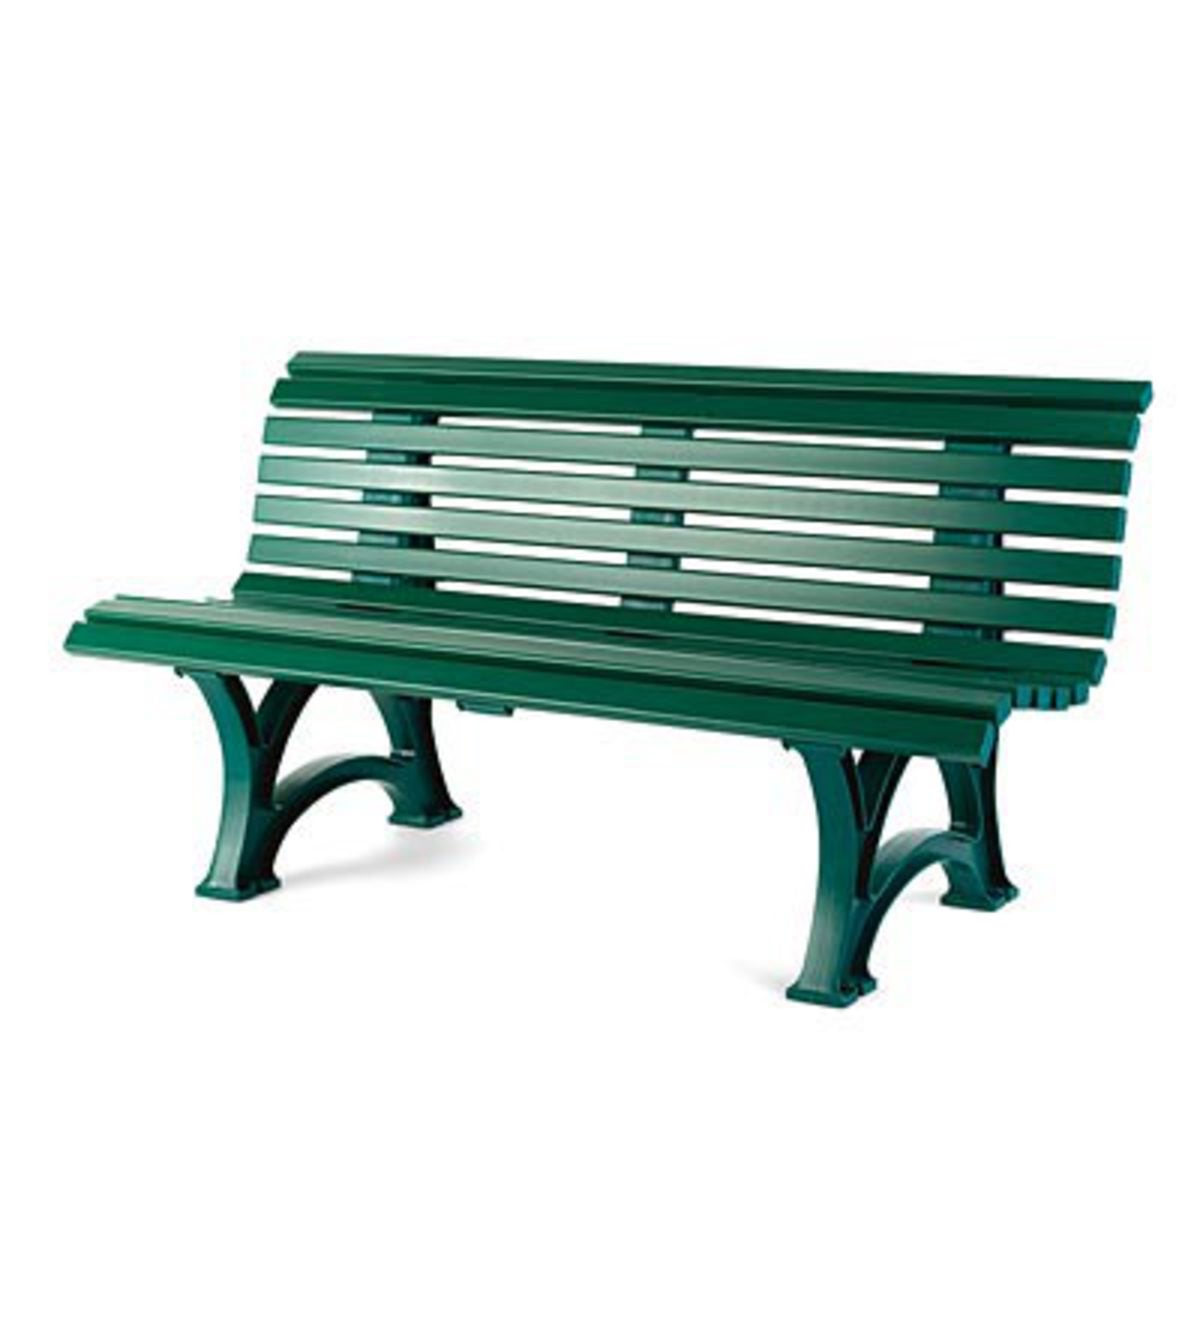 "59""x 26-1/2""x 31-1/2""H German-Made, Weatherproof Resin Garden Bench - GREEN"